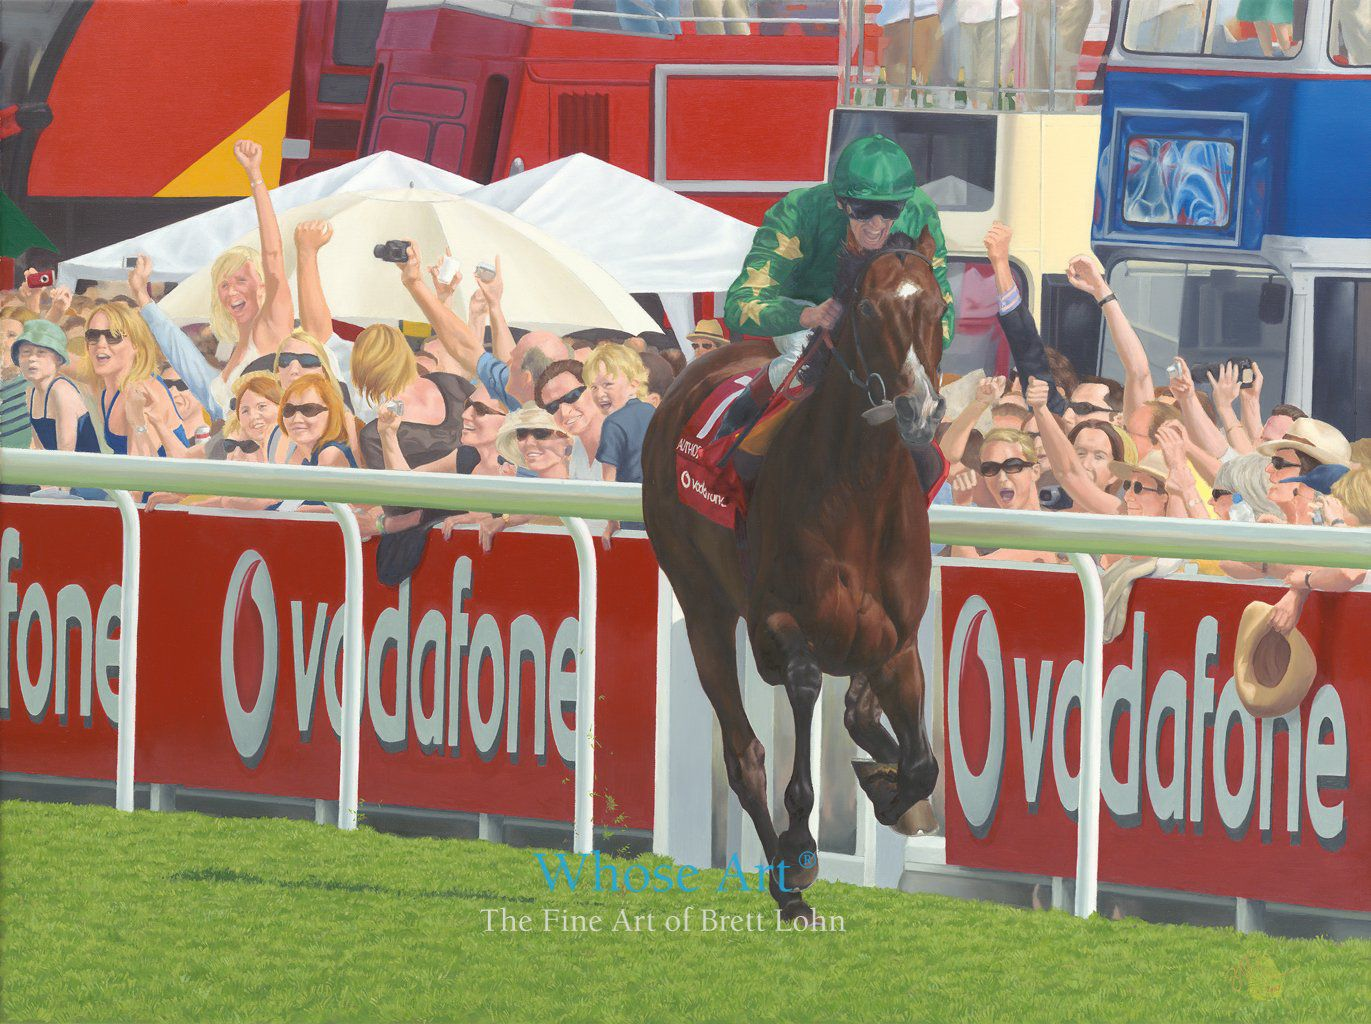 Frankie Dettori Epsom Derby Art Card showing a painting of Dettori winning his first Derby with Authorized at Epsom